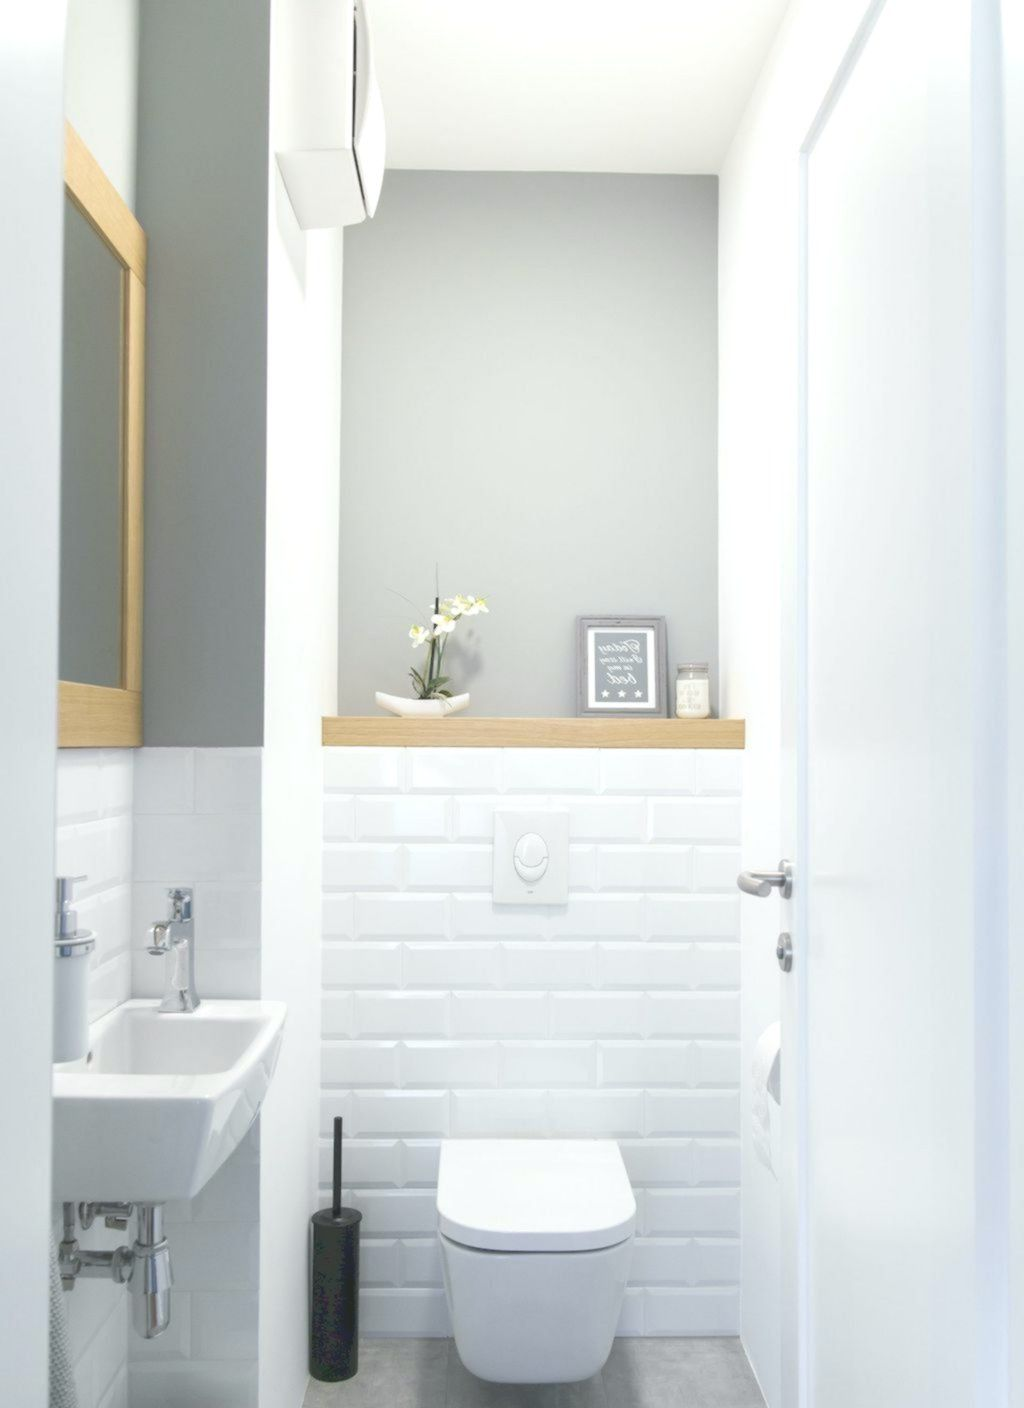 Space Saving Toilet Design For Small Bathroom Home To Z Toilet